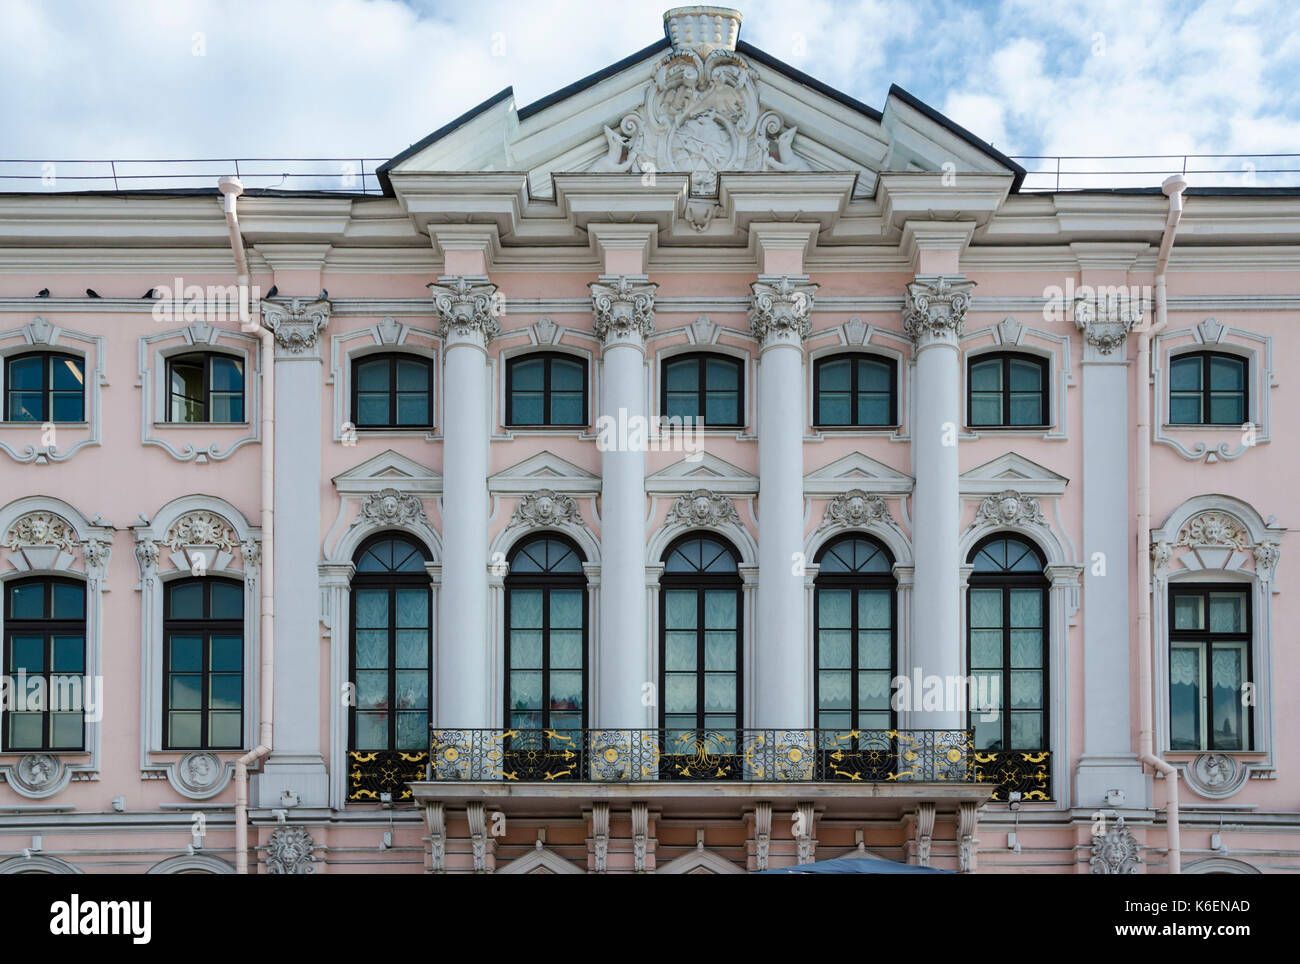 Classical Architecture Facade Building Baroque Style Richly Decorated With Architectural Details In St Petersburg Russia